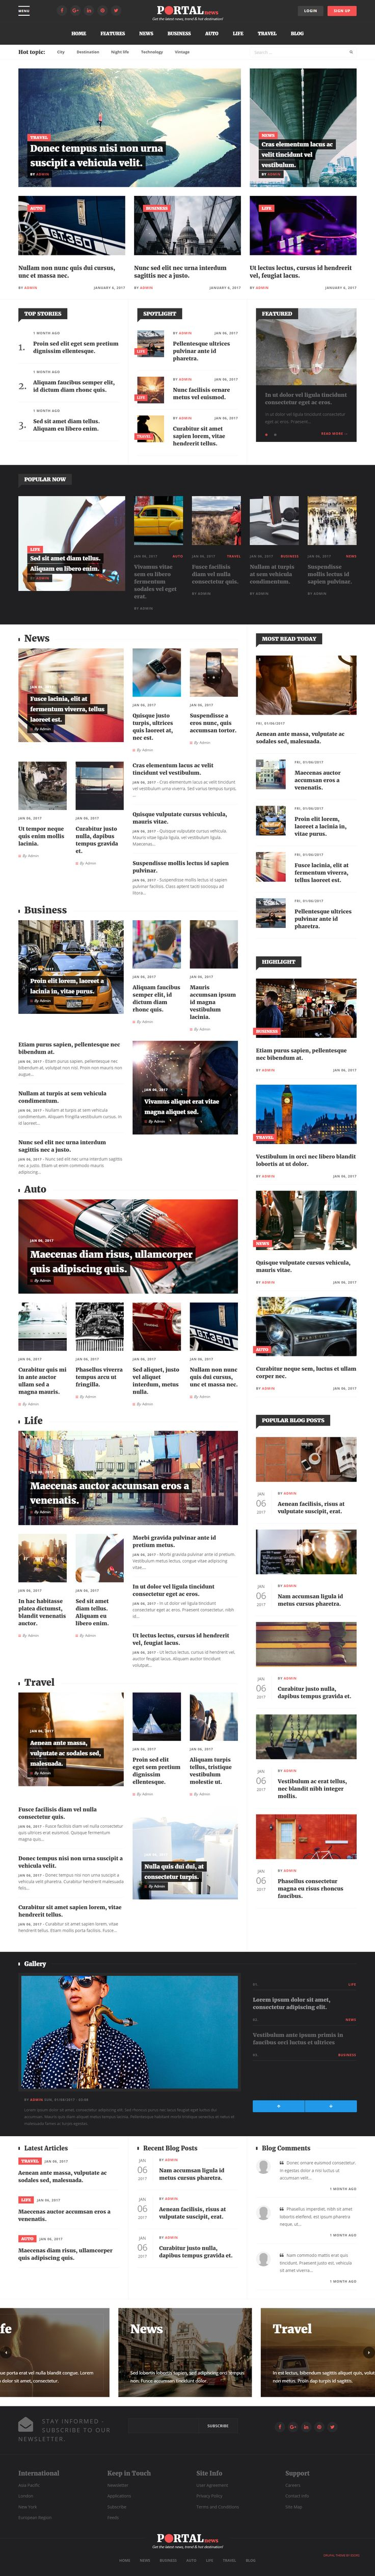 Portal News is Premium full Responsive Retina #Drupal8 Theme. Foundation 6 Framework. If you like this #Magazine Theme visit our handpicked list of best #Drupal8Themes and Templates at: http://www.responsivemiracle.com/best-drupal-8-themes-and-templates/